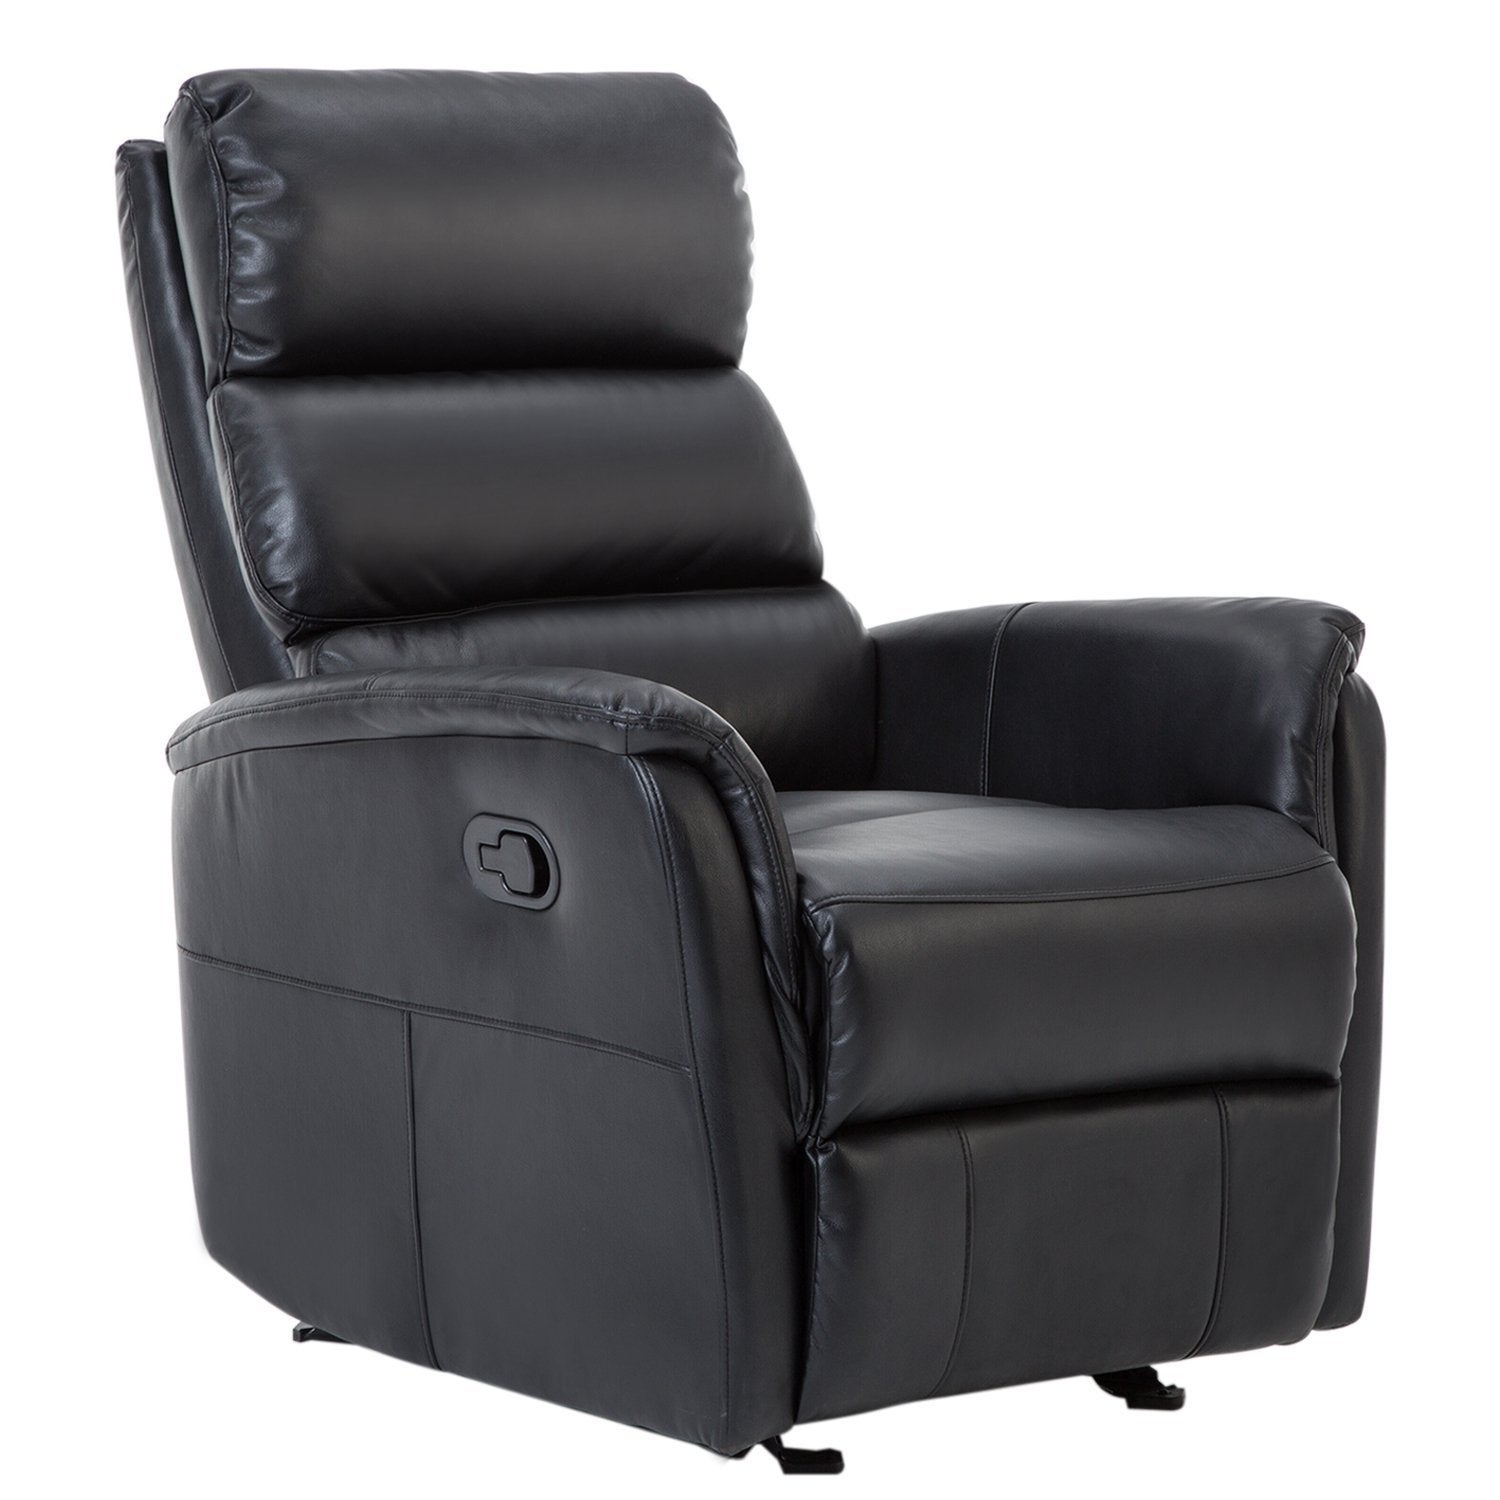 Cool Bonzy Glider Recliner Chair Leather Chair With Super Comfy Gliding Track Black Uwap Interior Chair Design Uwaporg